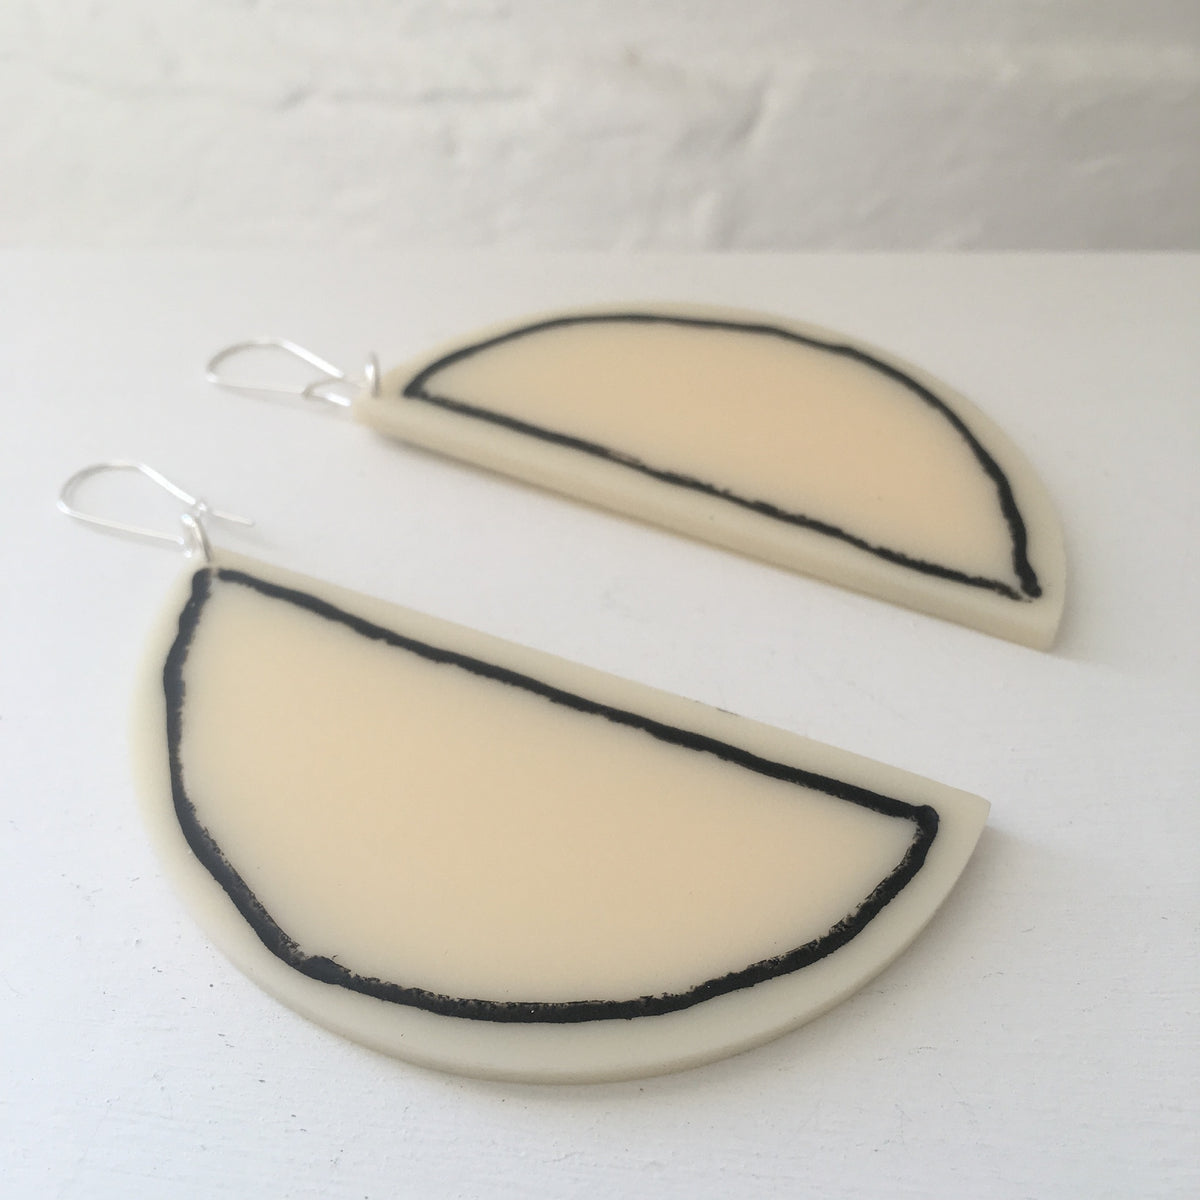 Phebe Parisia Circle Half Moon Earrings - Creme